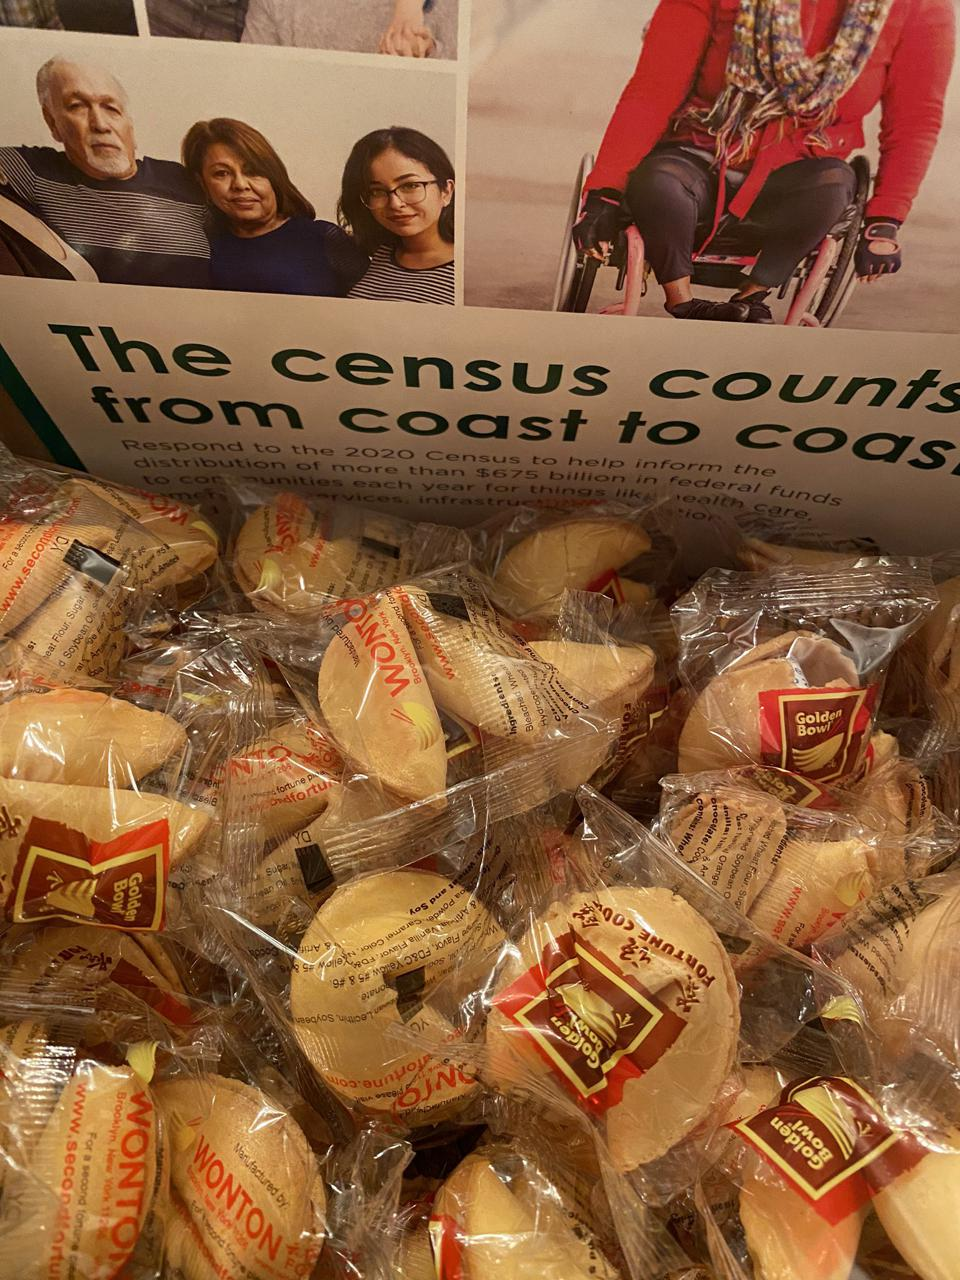 Fortune cookies with census messages